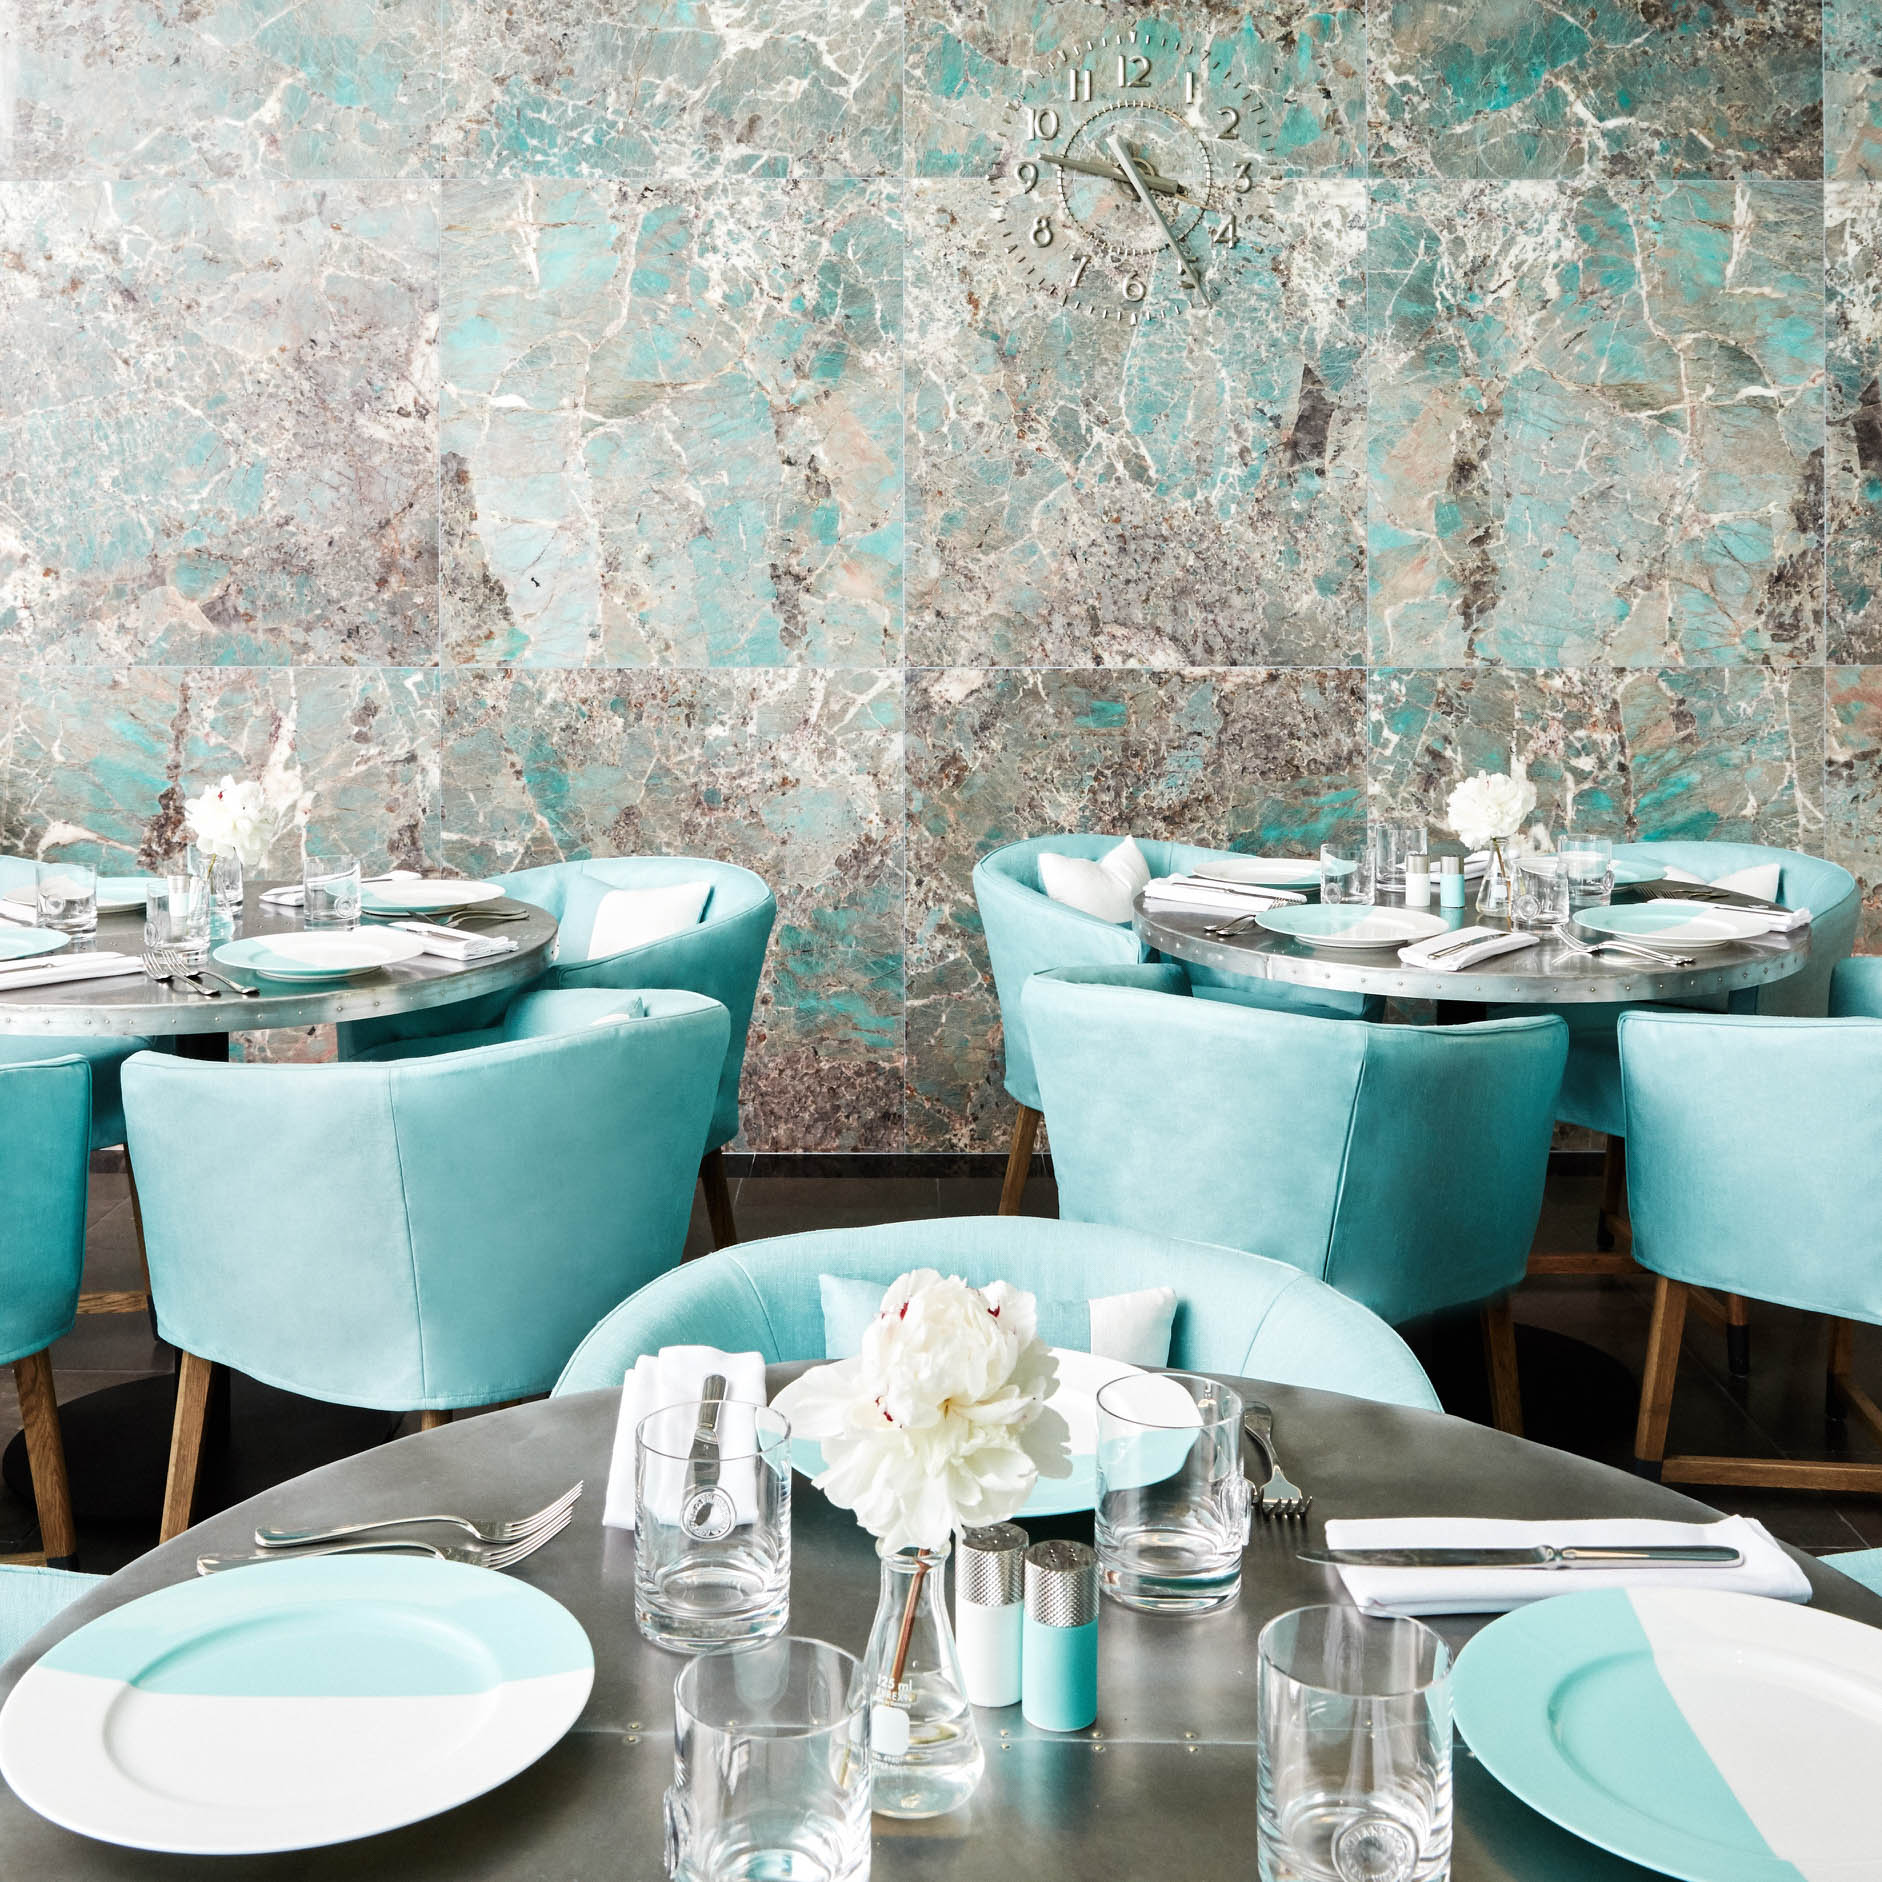 Tiffany's Café suelovesnyc_tiffanys_cafe_tiffany_cafe_the_blue_box_cafe_new_york